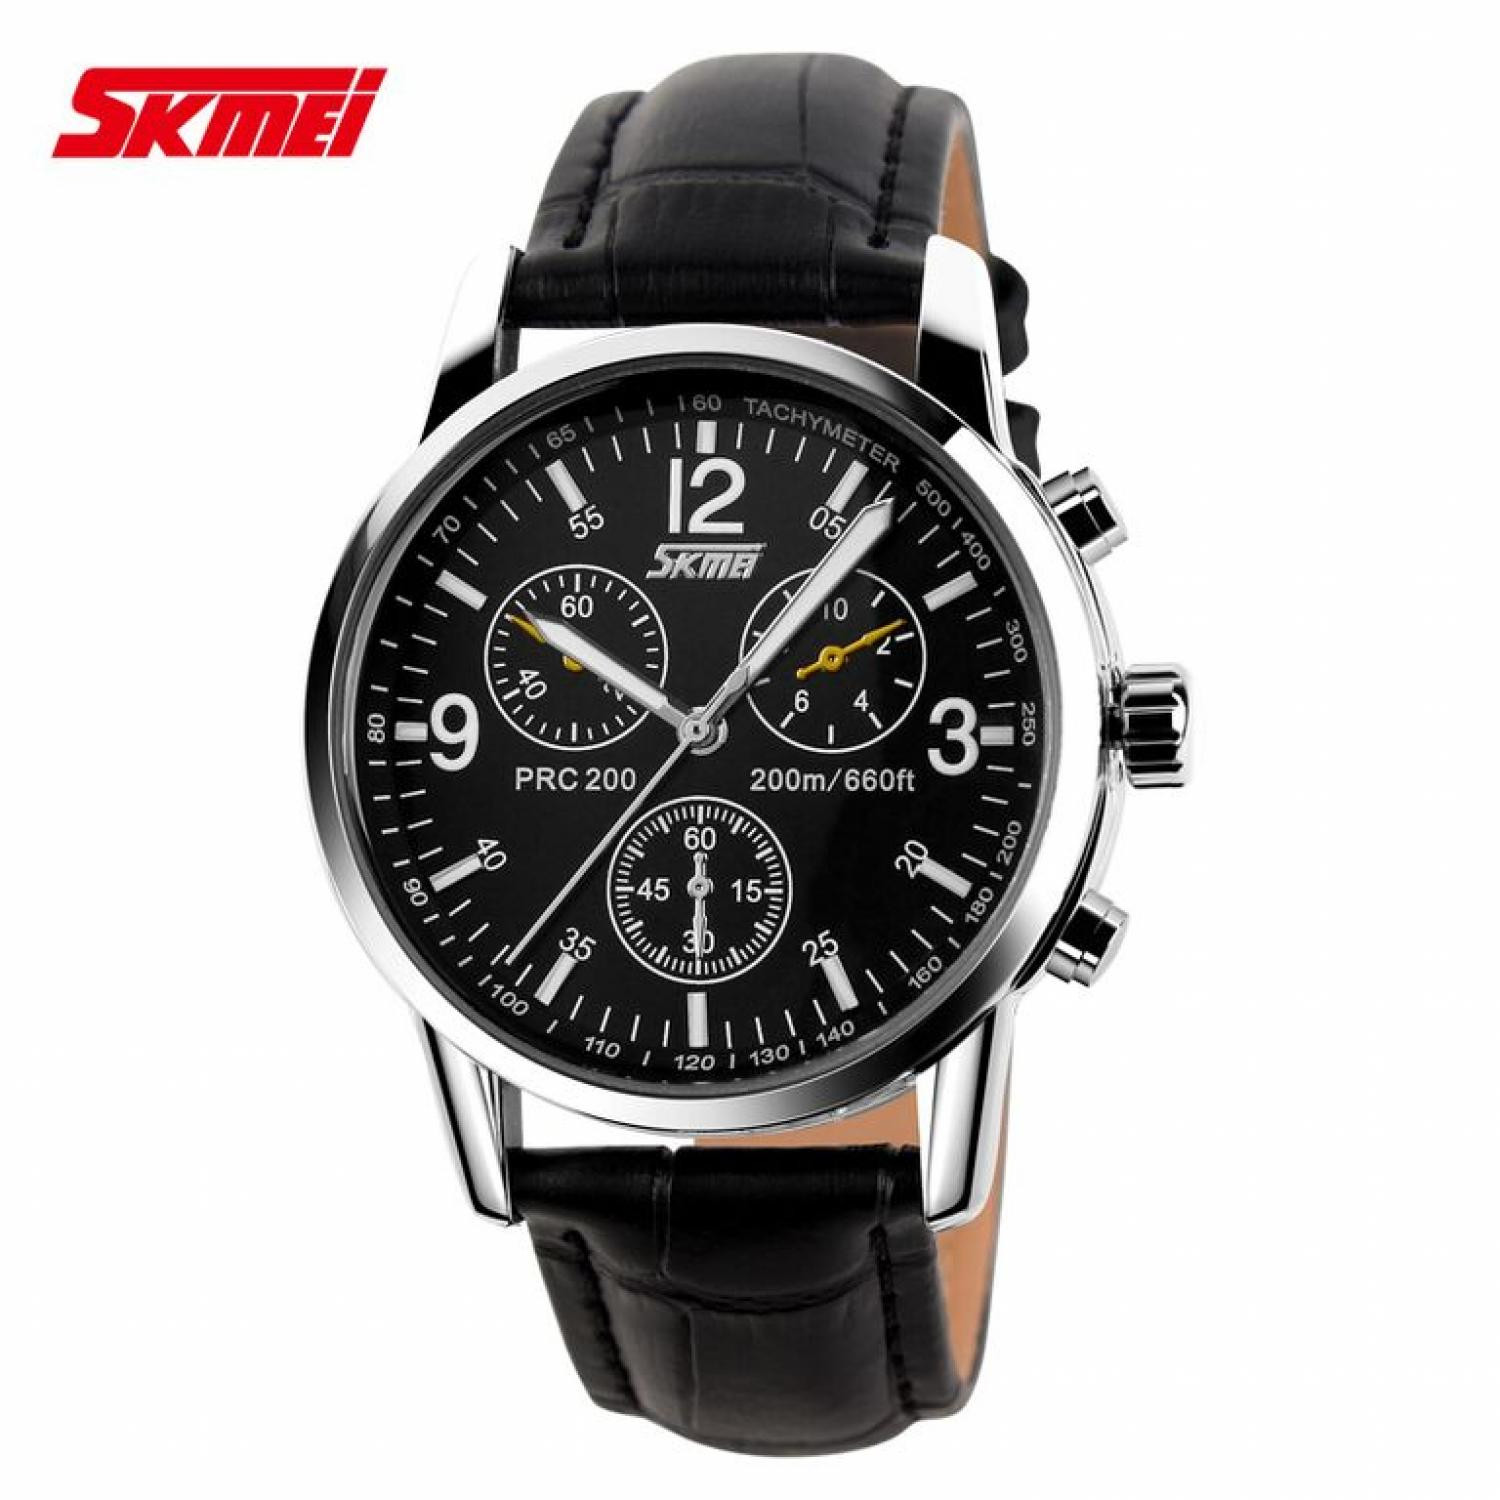 86e55c8249a Jam Tangan Pria SKMEI Analog Casual Leather Strap Original 9070CL